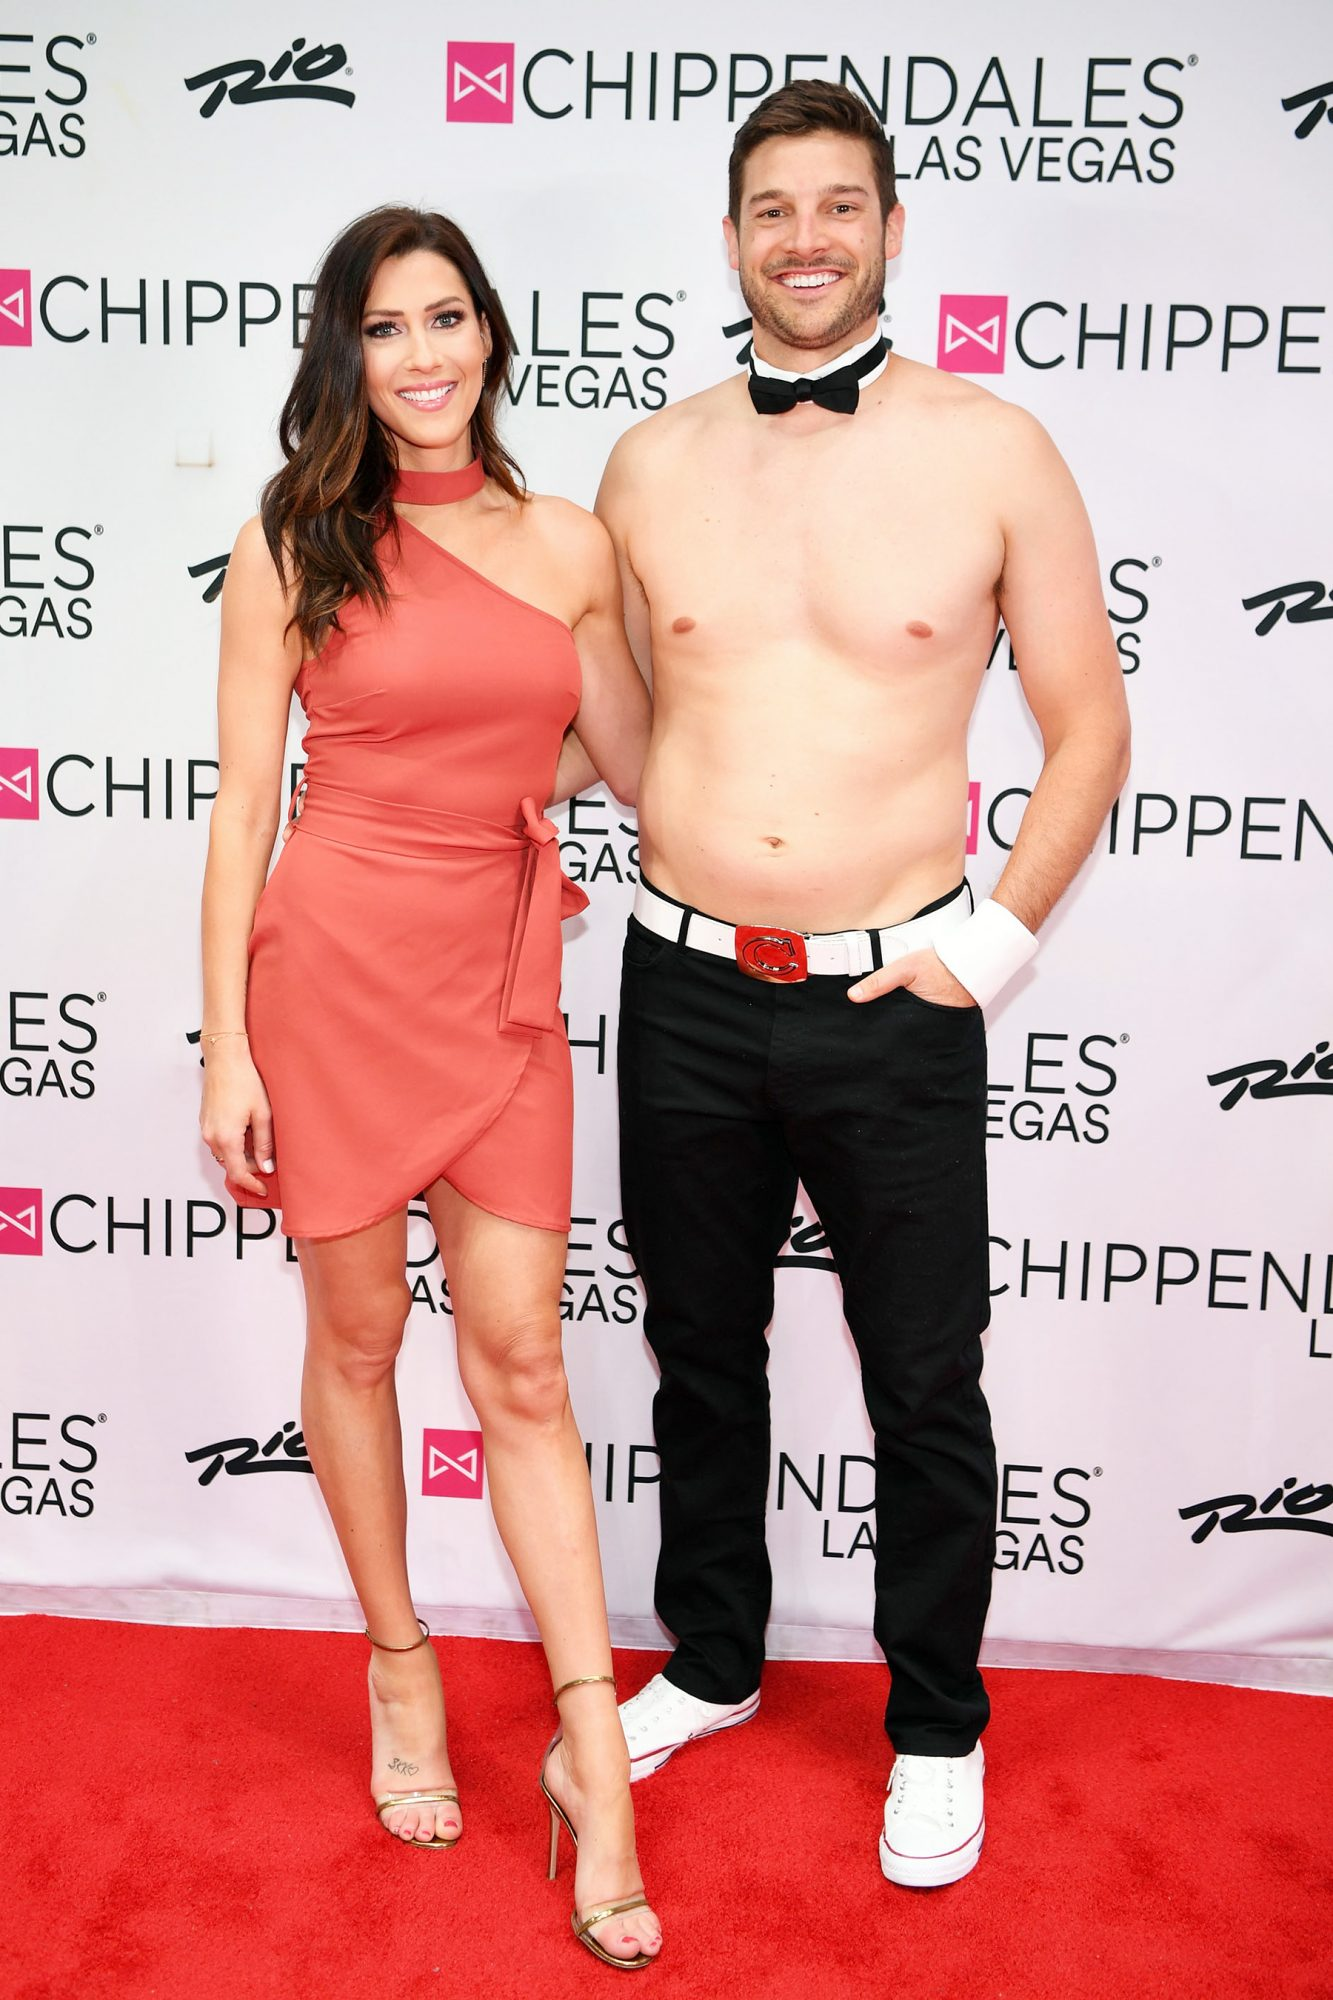 The Bachelorettes Garrett Yrigoyen Guest Stars In Chippendales Las Vegas At The Rio All-Suite Hotel And Casino